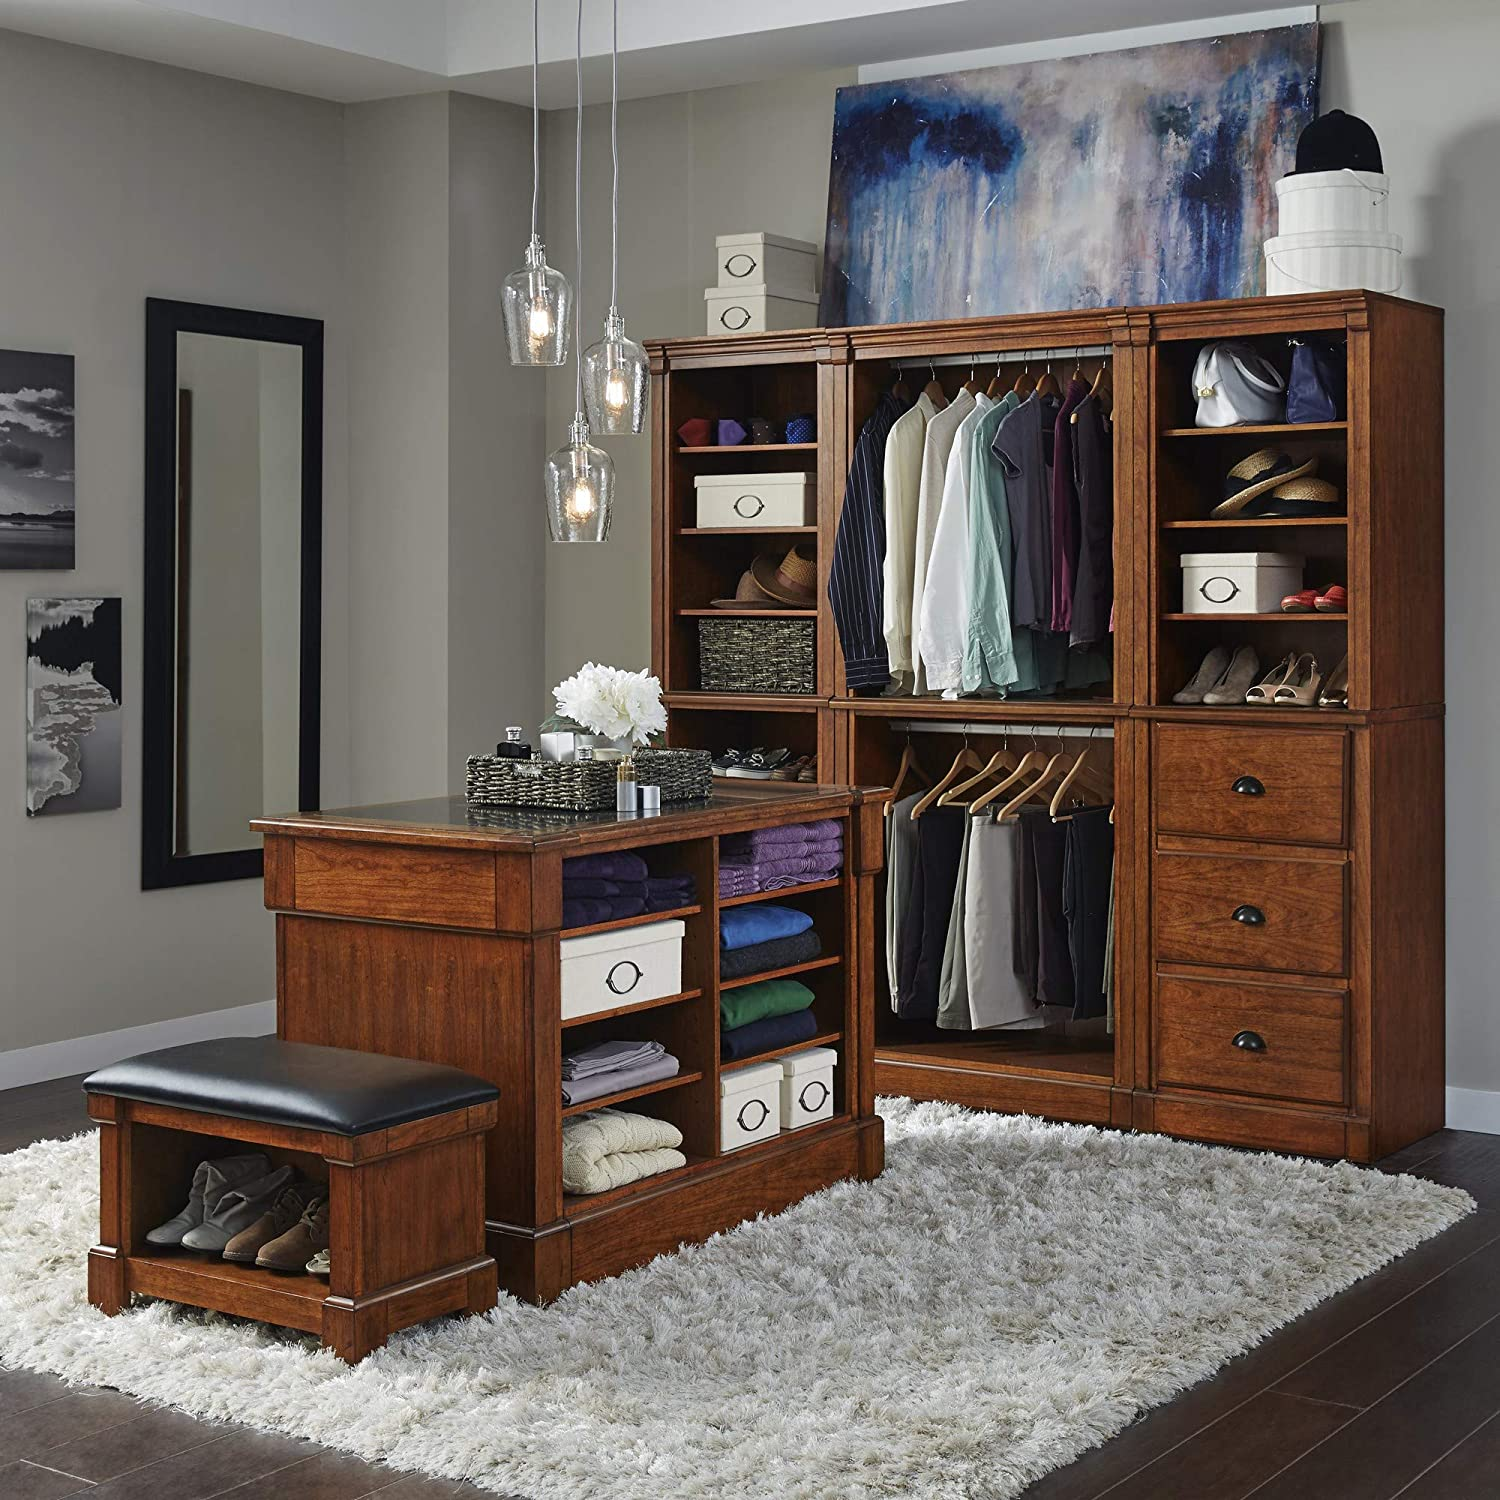 Peachy Aspen Rustic Cherry 5 Piece Closet Storage System Organizer By Home Styles Gmtry Best Dining Table And Chair Ideas Images Gmtryco